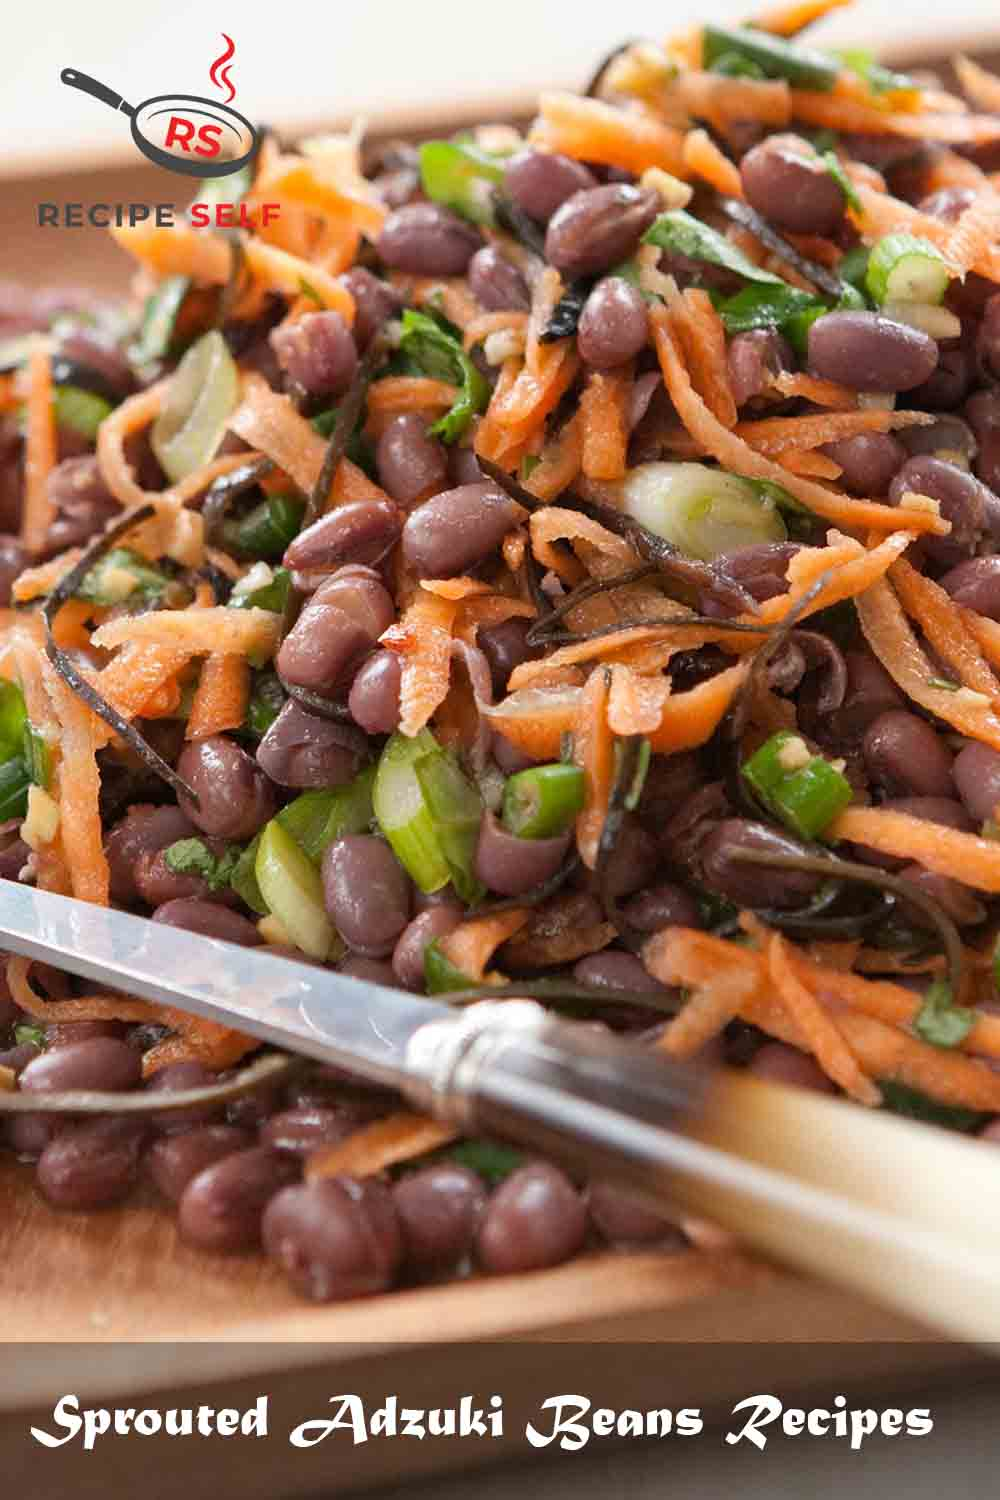 Sprouted Adzuki Beans Recipes